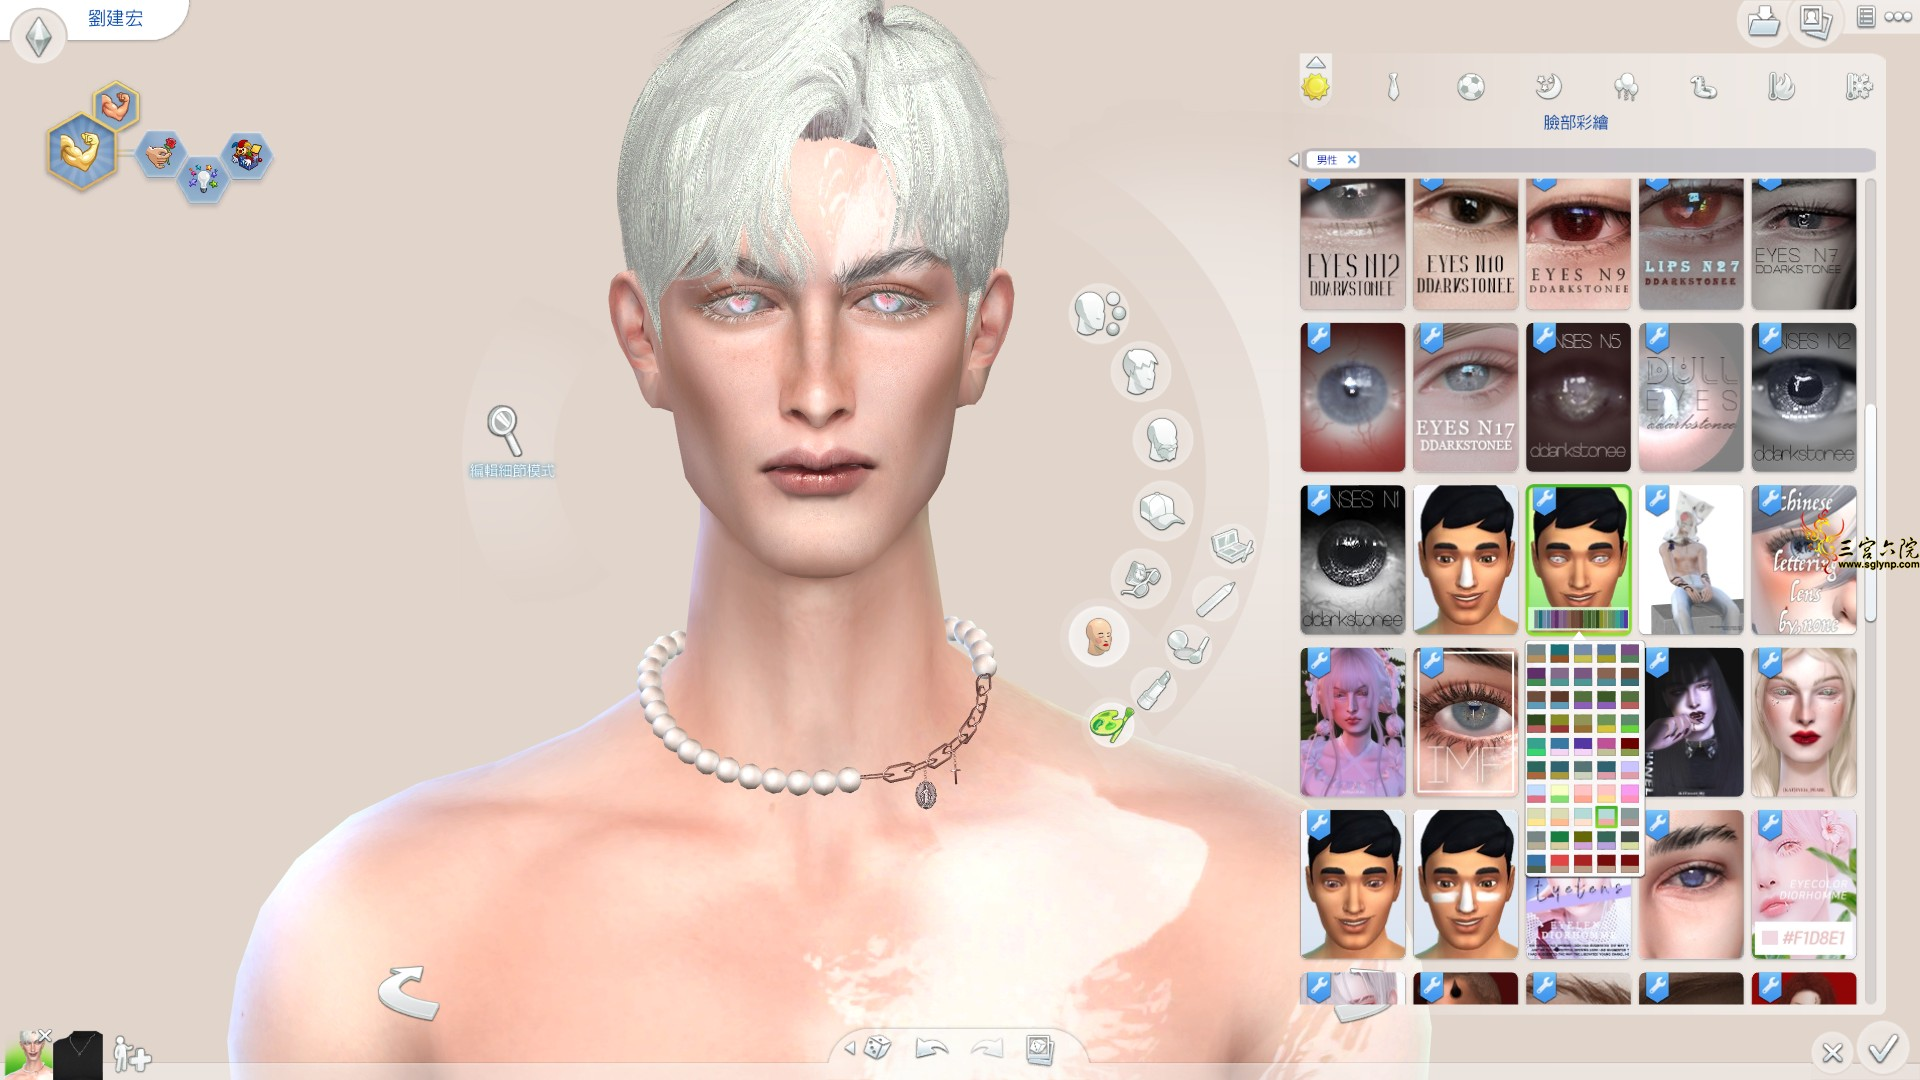 The Sims 4 2020_8_1 下午 11_58_42.png